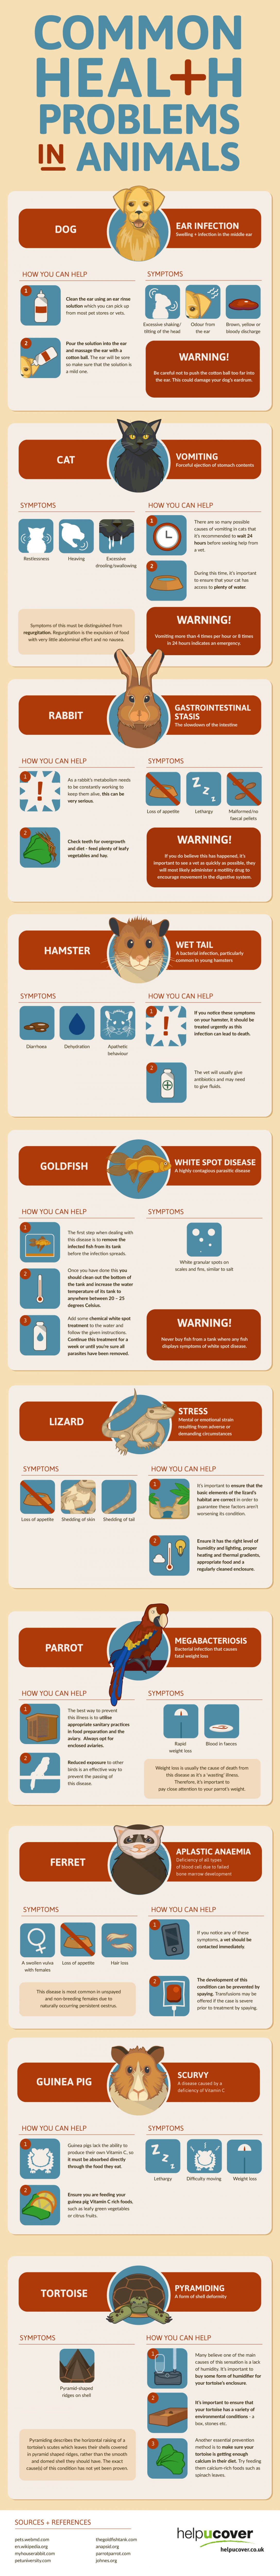 Most Common Health Problems in Pets Infographic